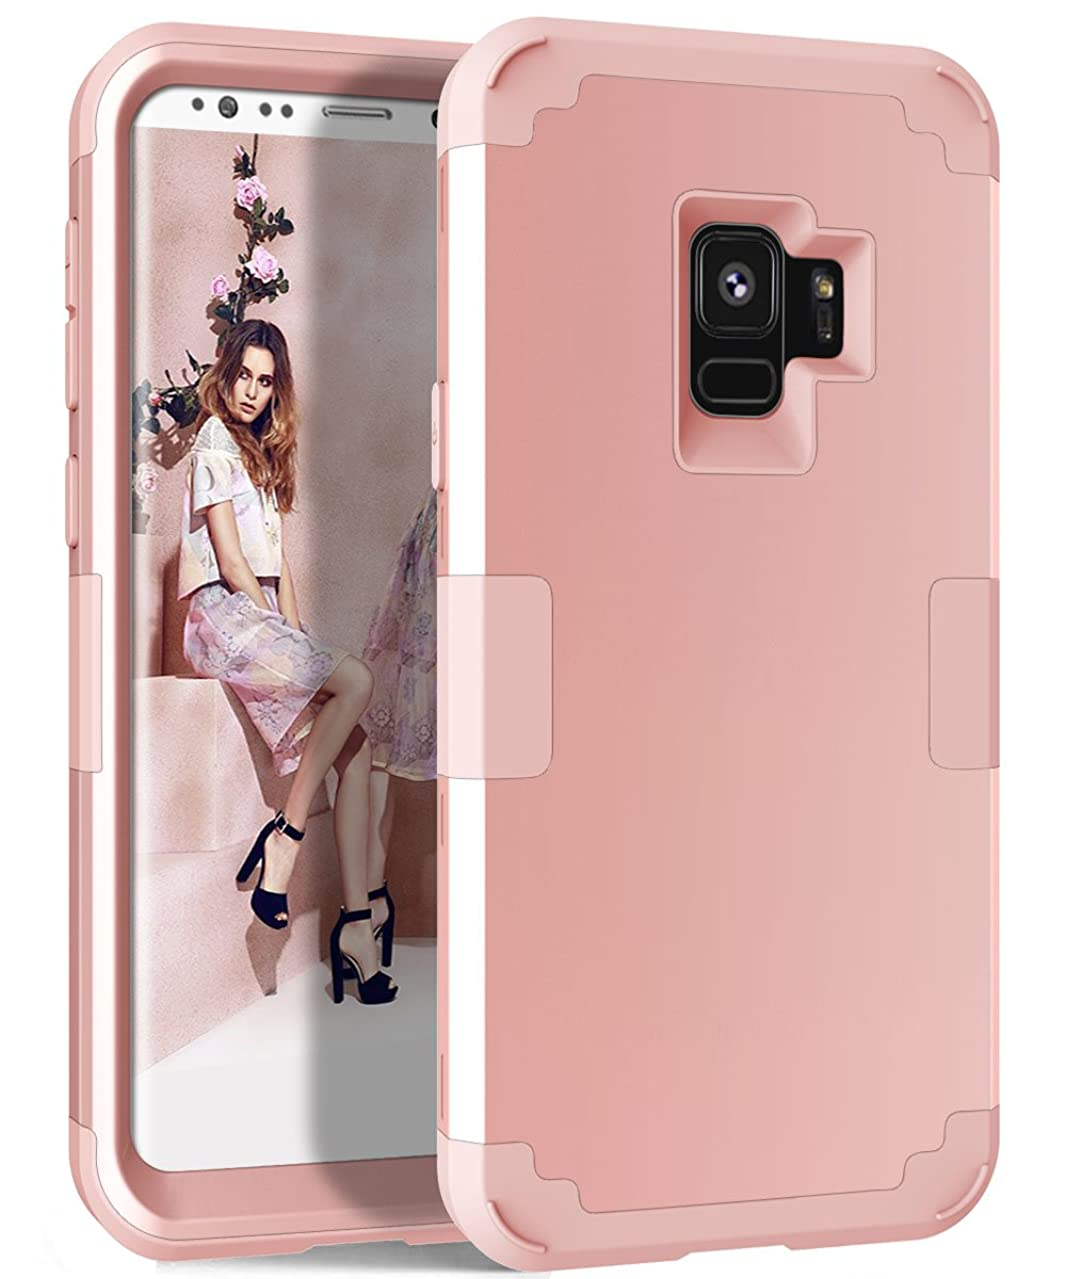 Galaxy S9 Case, MCUK Hybrid Heavy Duty Scratch-Resistant Shockproof Full-Body Protective Case Cover with Dual Layer Hard PC+ Soft Silicone Impact Protection for Samsung Galaxy S9 (Rose Gold)